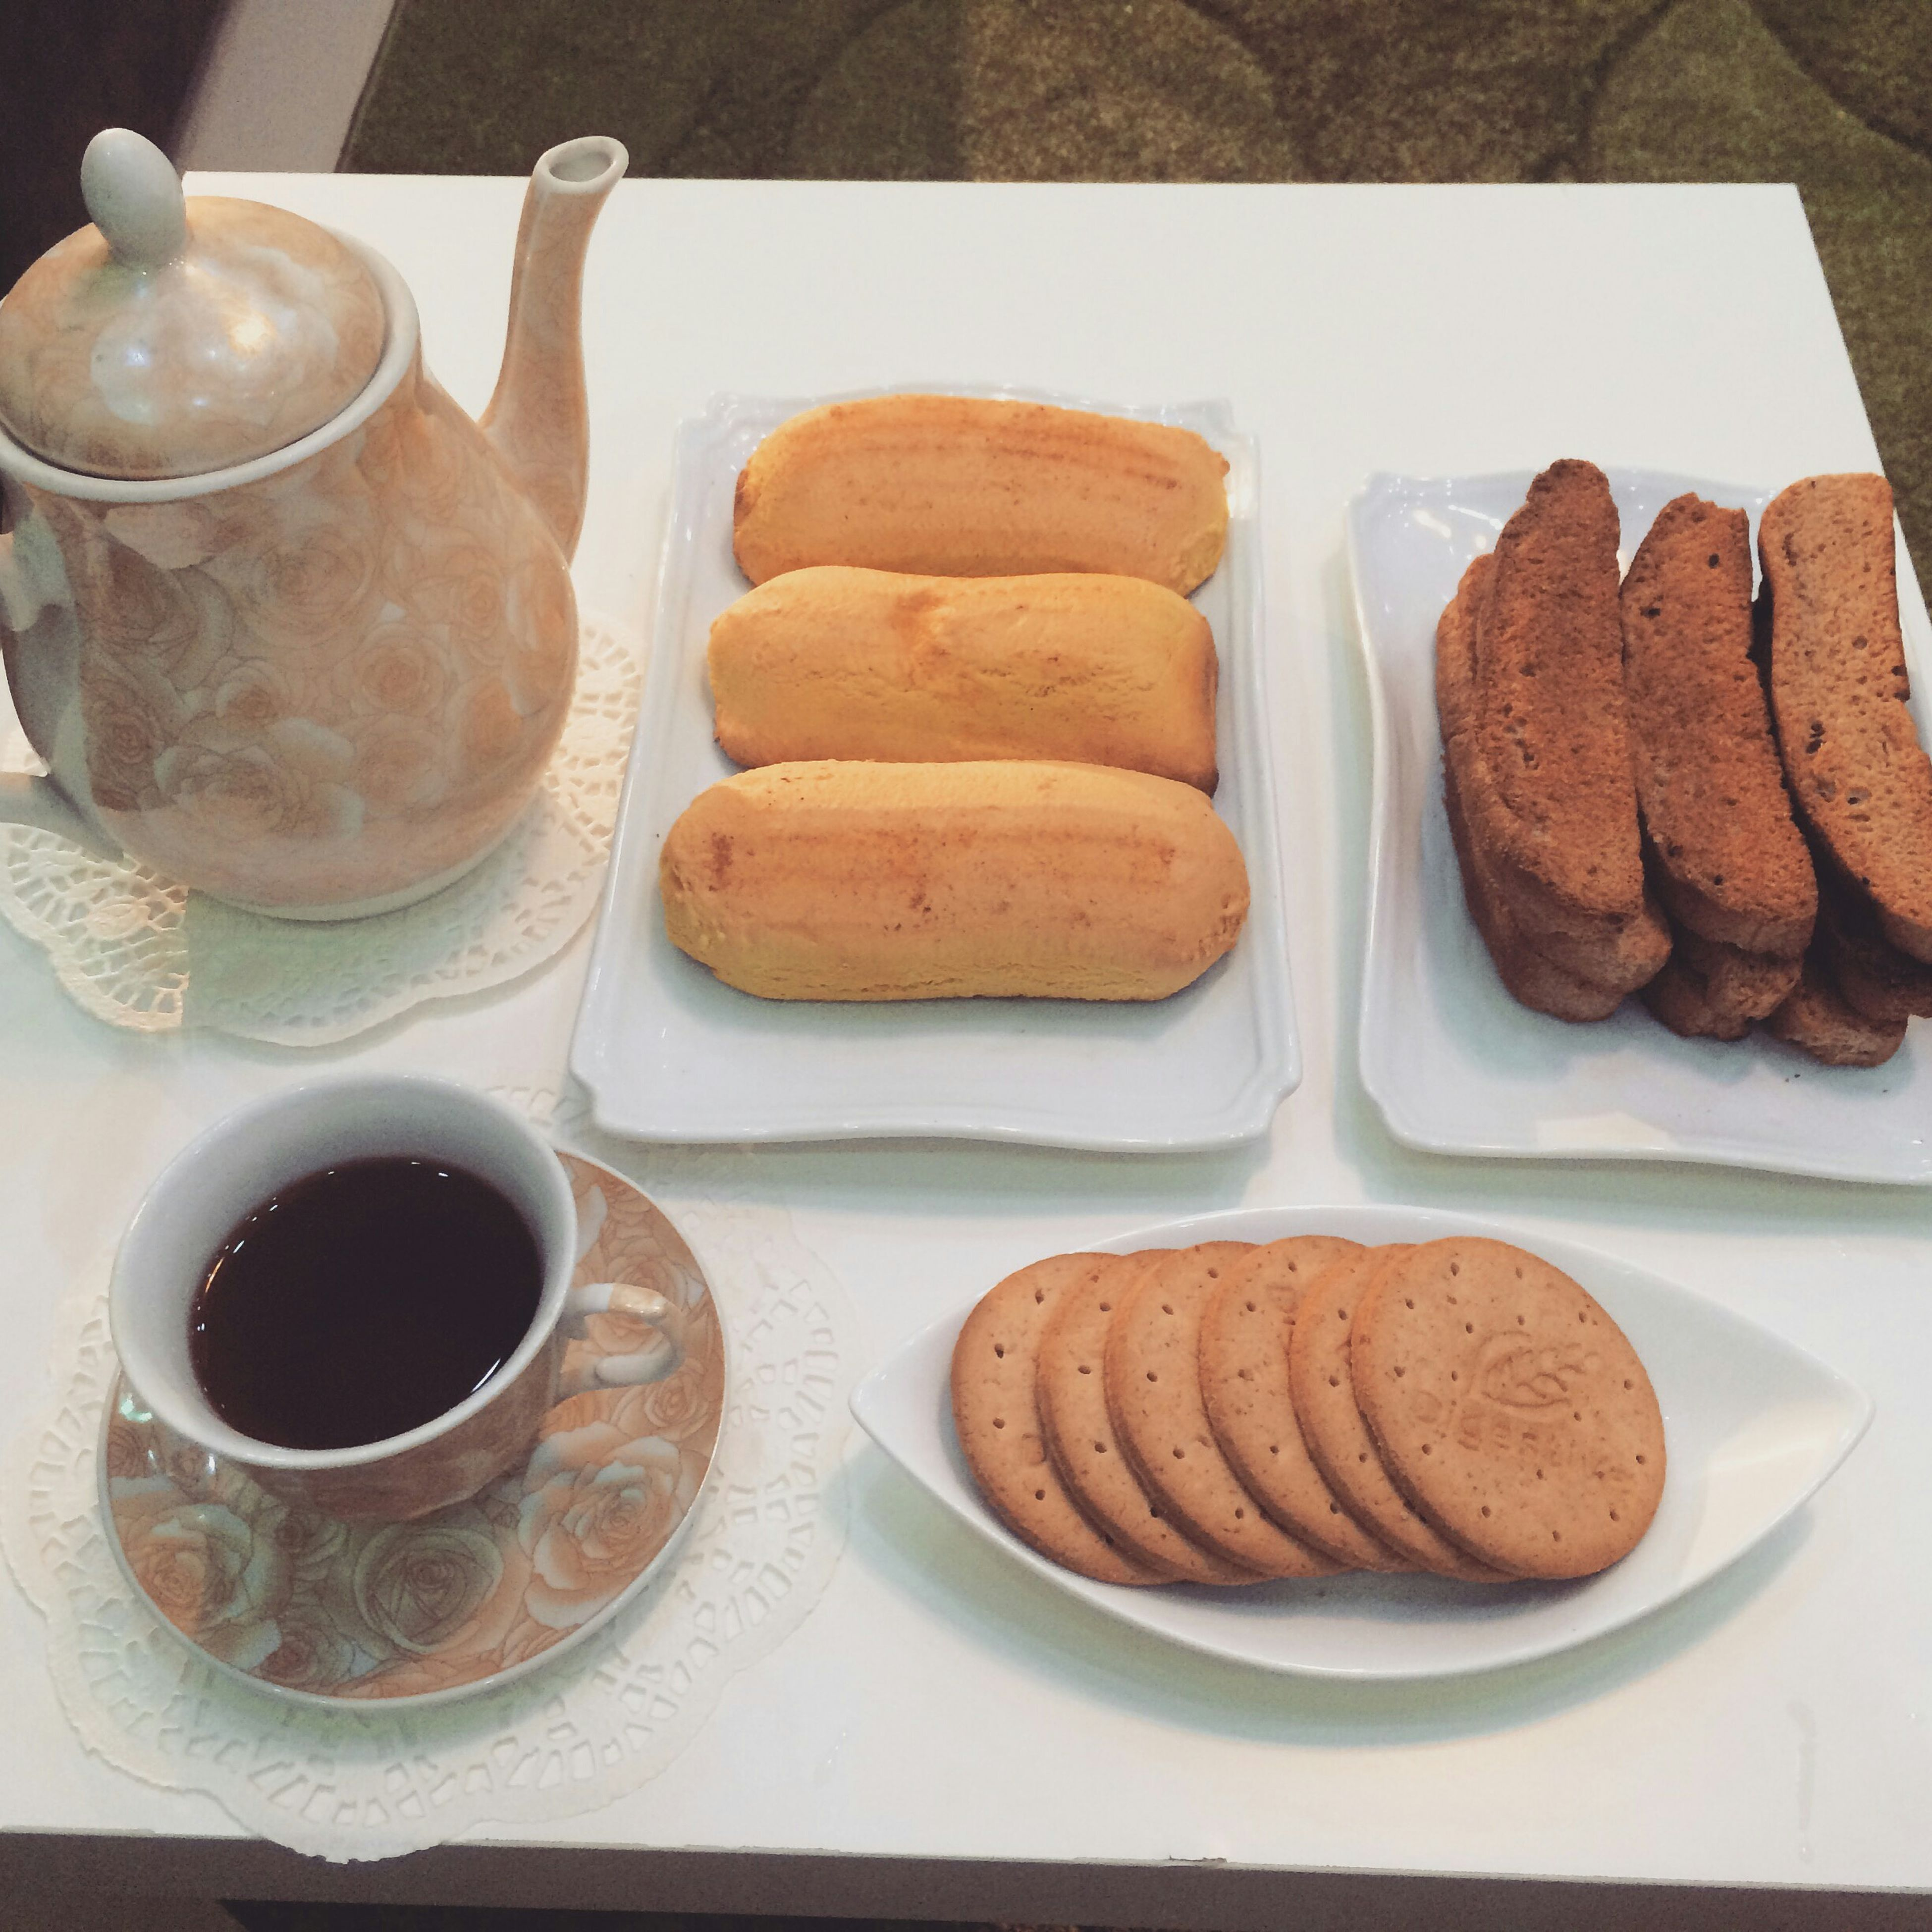 food and drink, indoors, food, freshness, still life, ready-to-eat, plate, table, sweet food, bread, breakfast, indulgence, unhealthy eating, dessert, refreshment, drink, baked, coffee - drink, high angle view, coffee cup